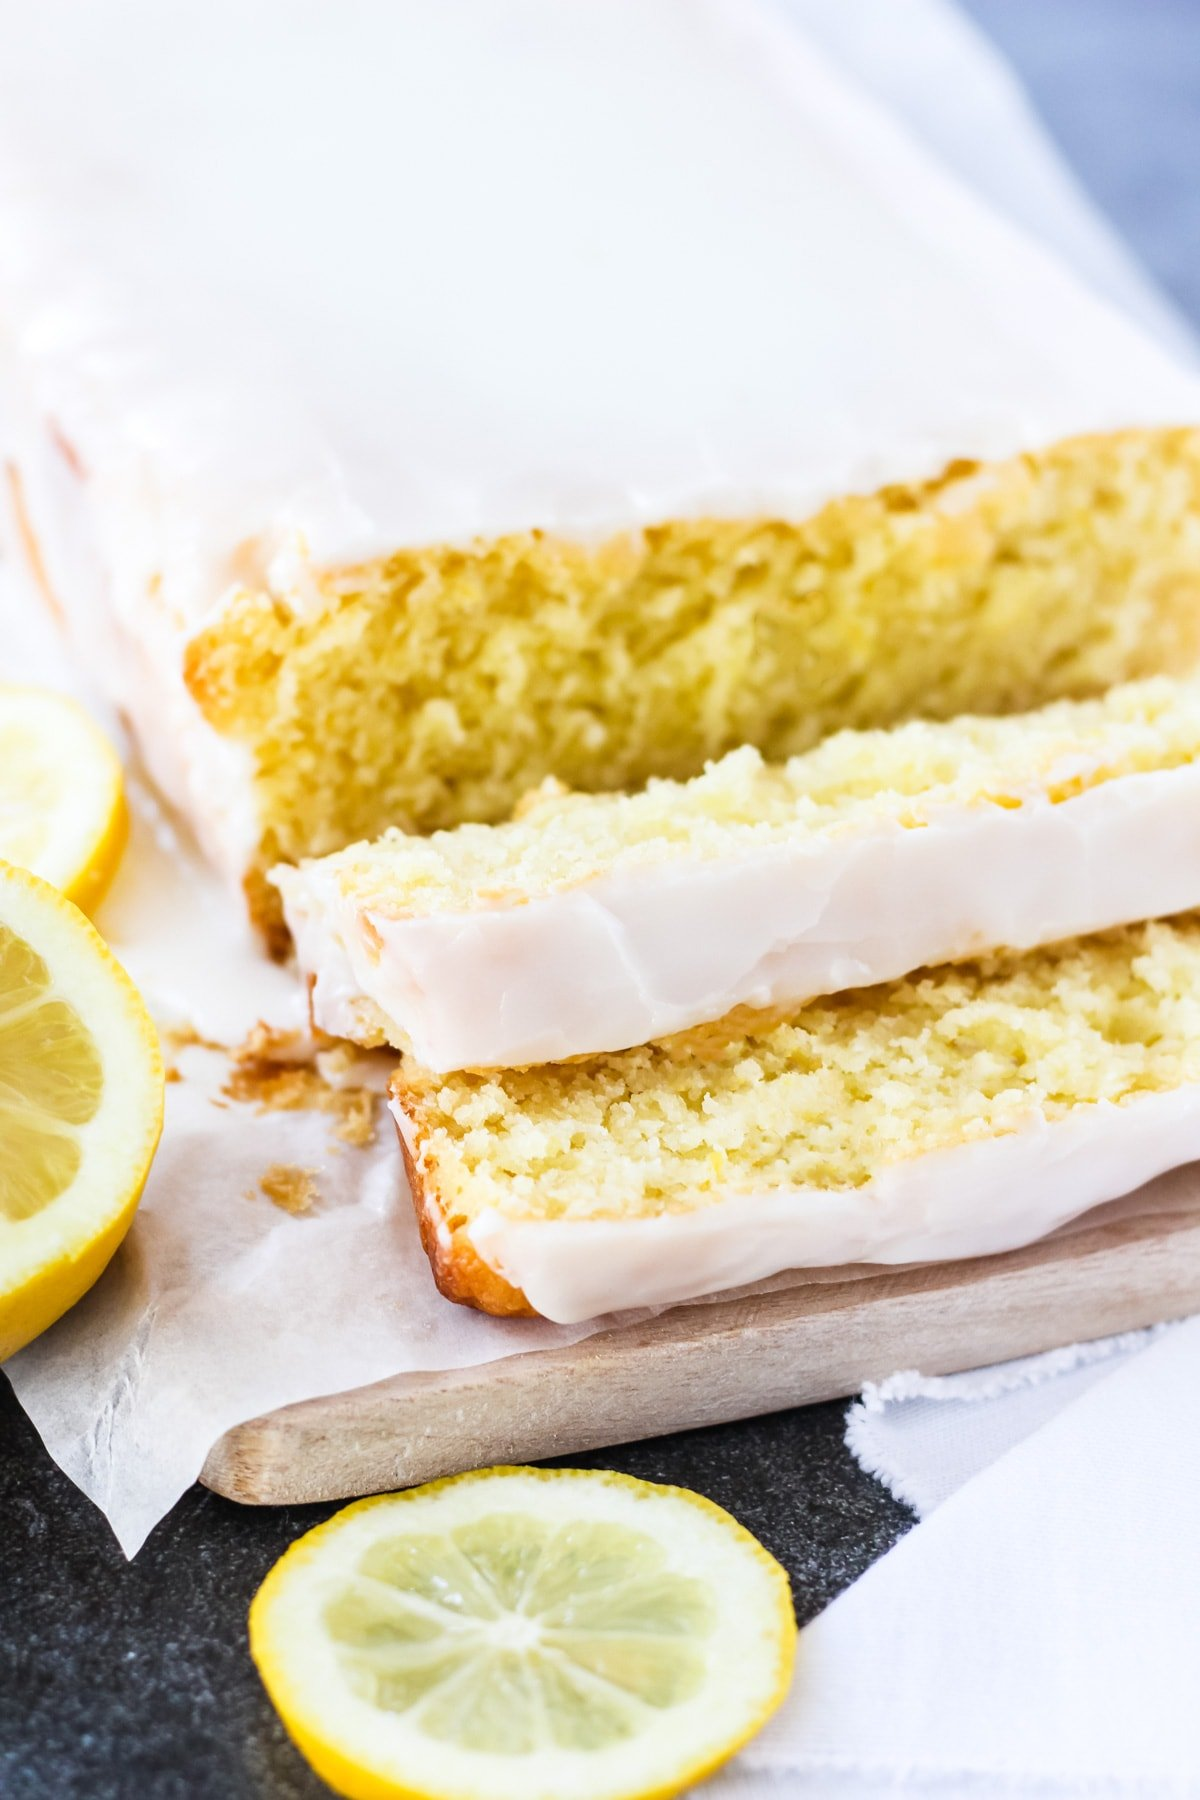 a side view of a lemon loaf cut into slices. it's topped with white icing. on the side are slices of fresh lemon